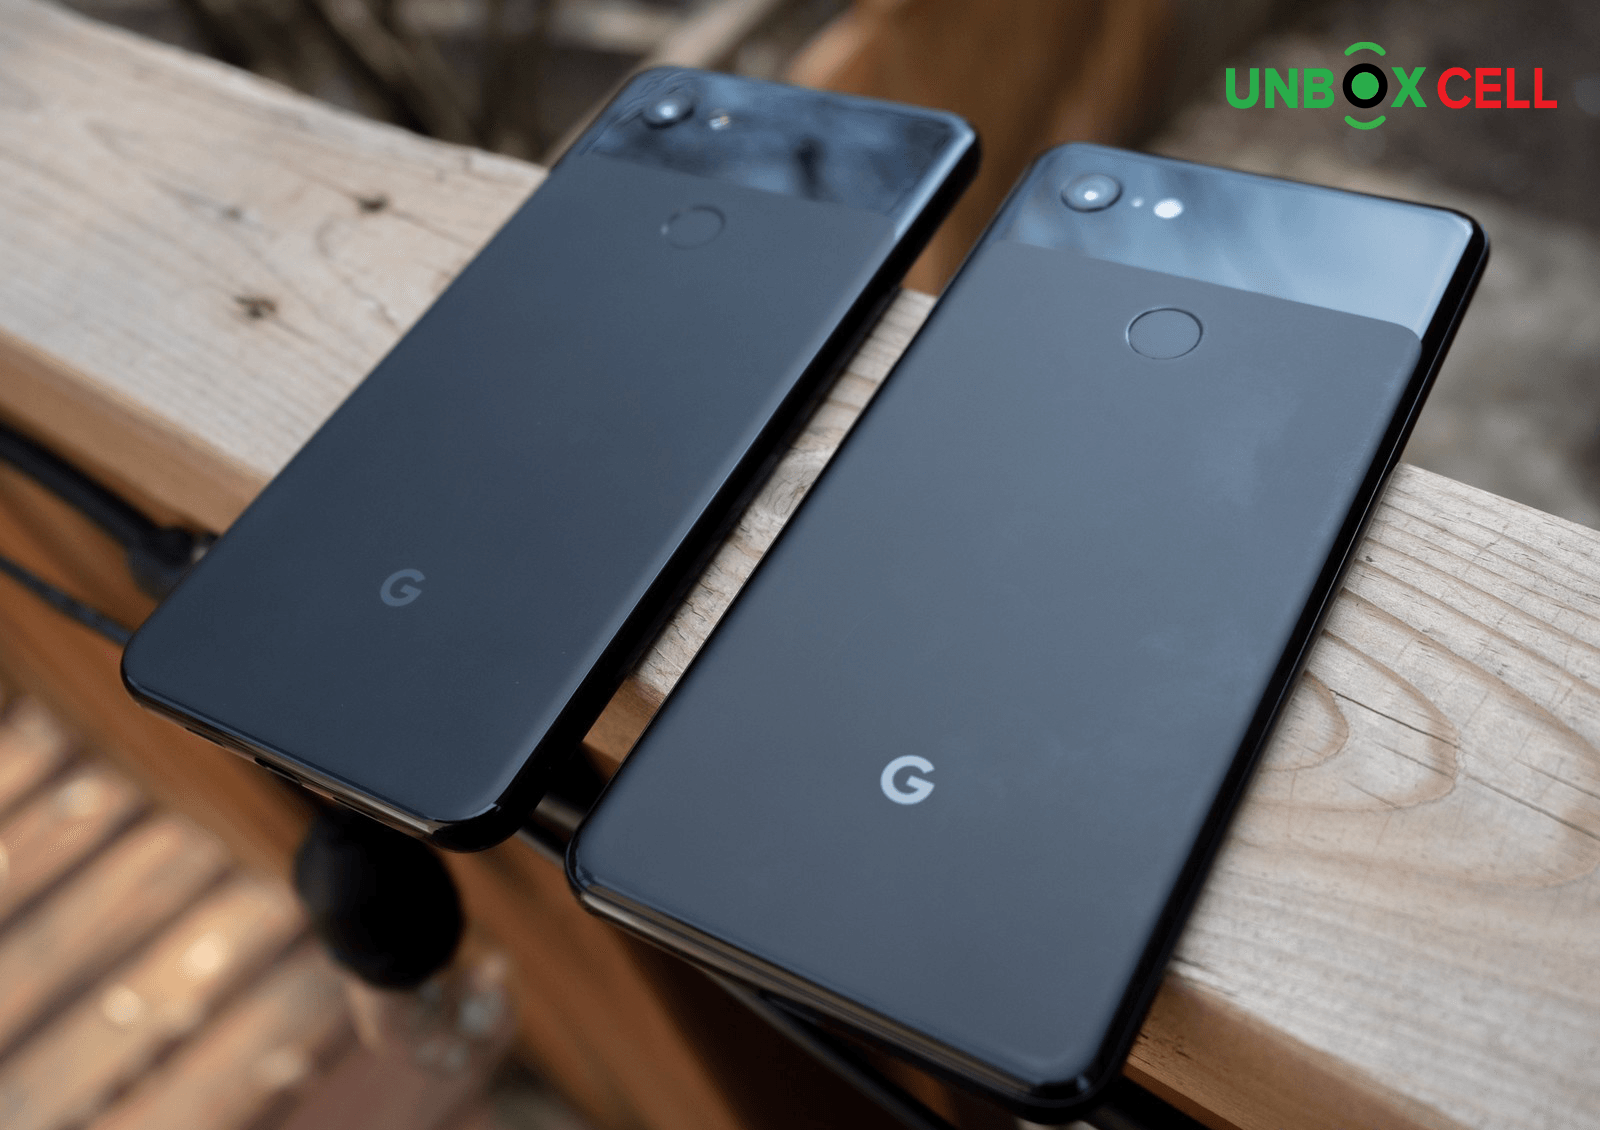 Google Pixel Pixel 3A and Pixel 3A XL- unbox cell